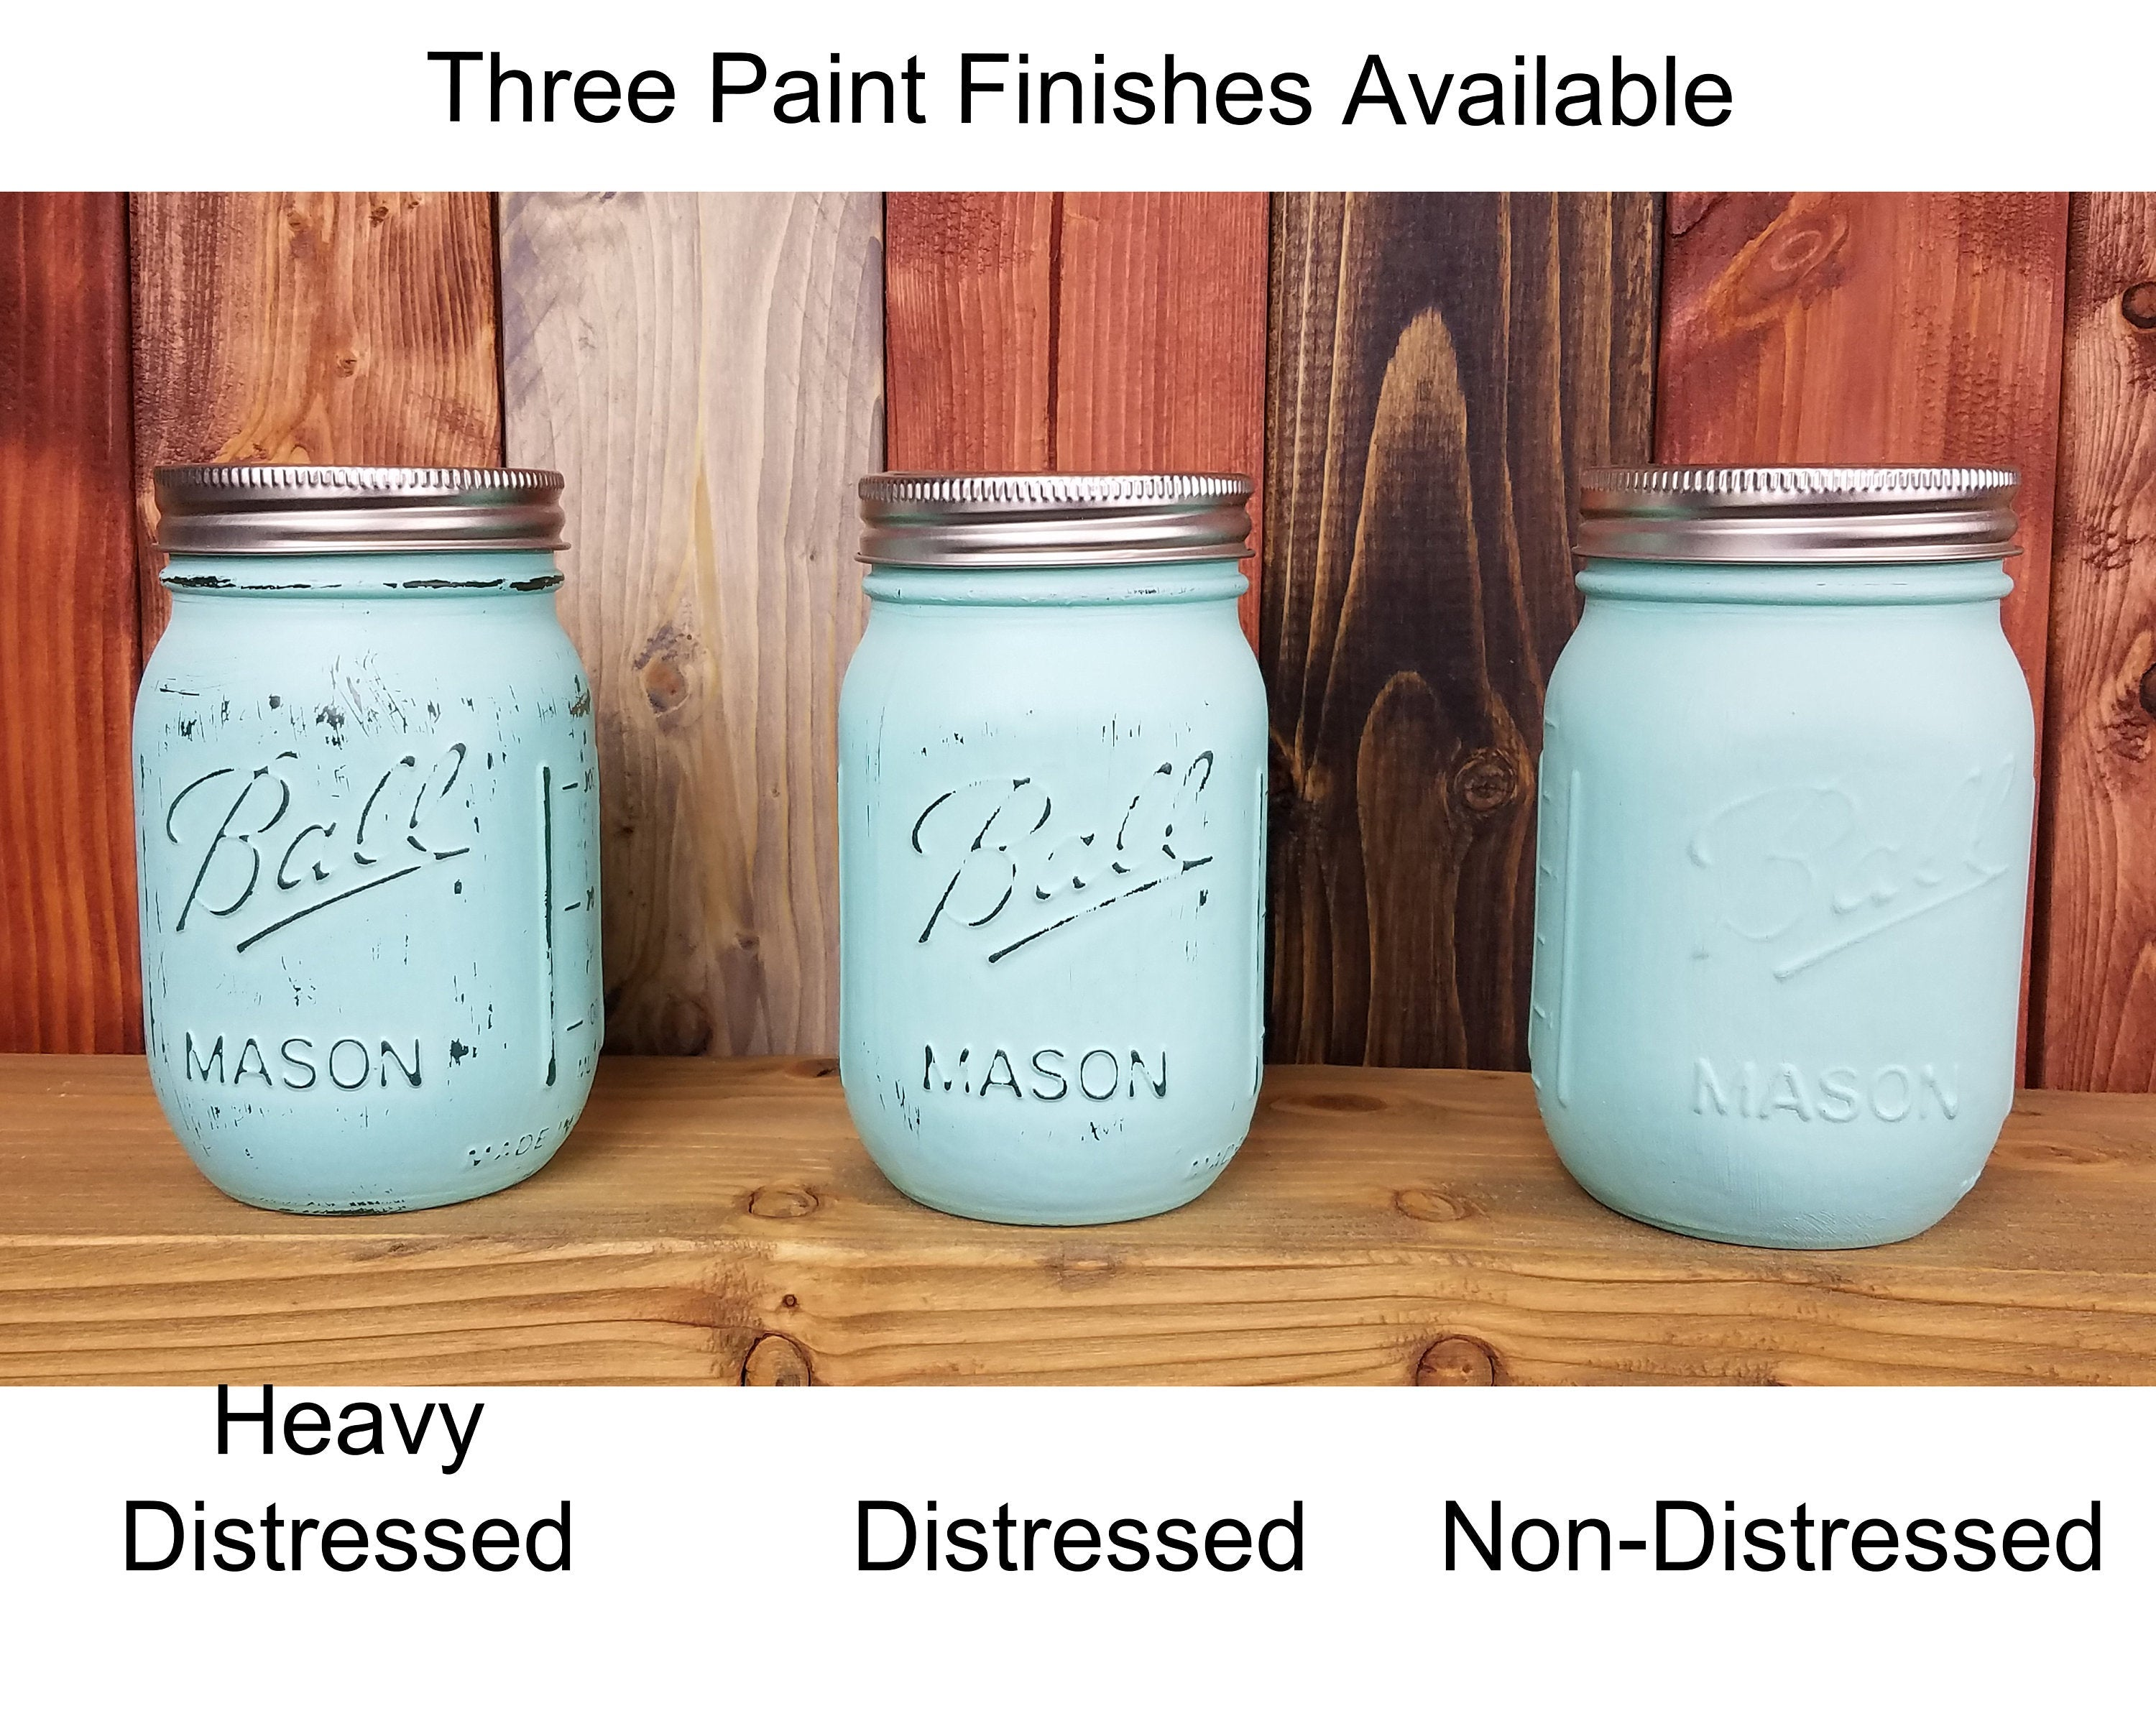 Painted Mason Jar Pump Jar, 20 Paint Colors - Renewed Decor & Storage